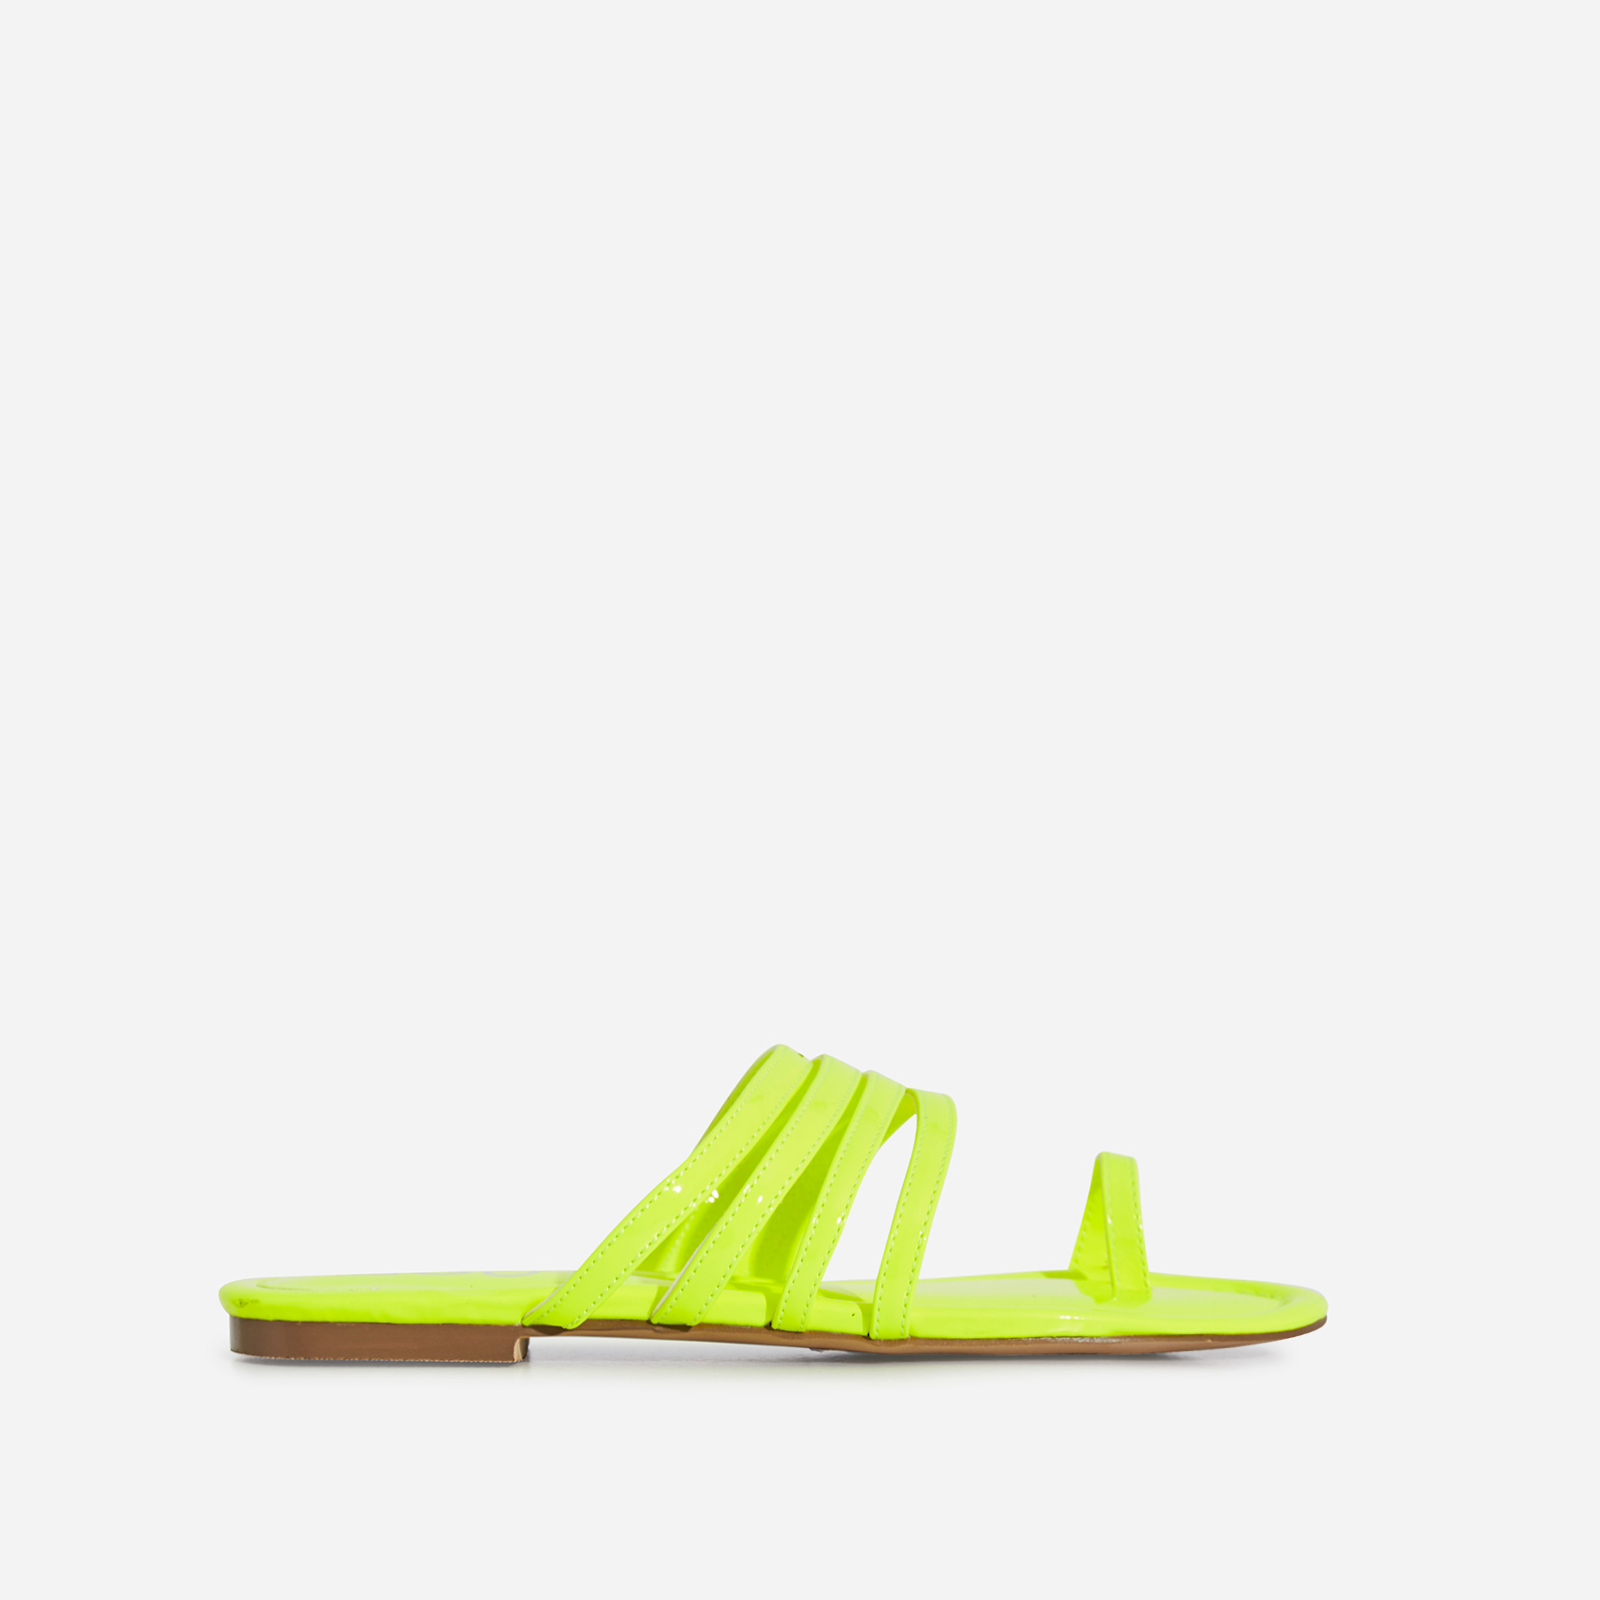 Dax Toe Strap Flat Sandal In Lime Green Patent